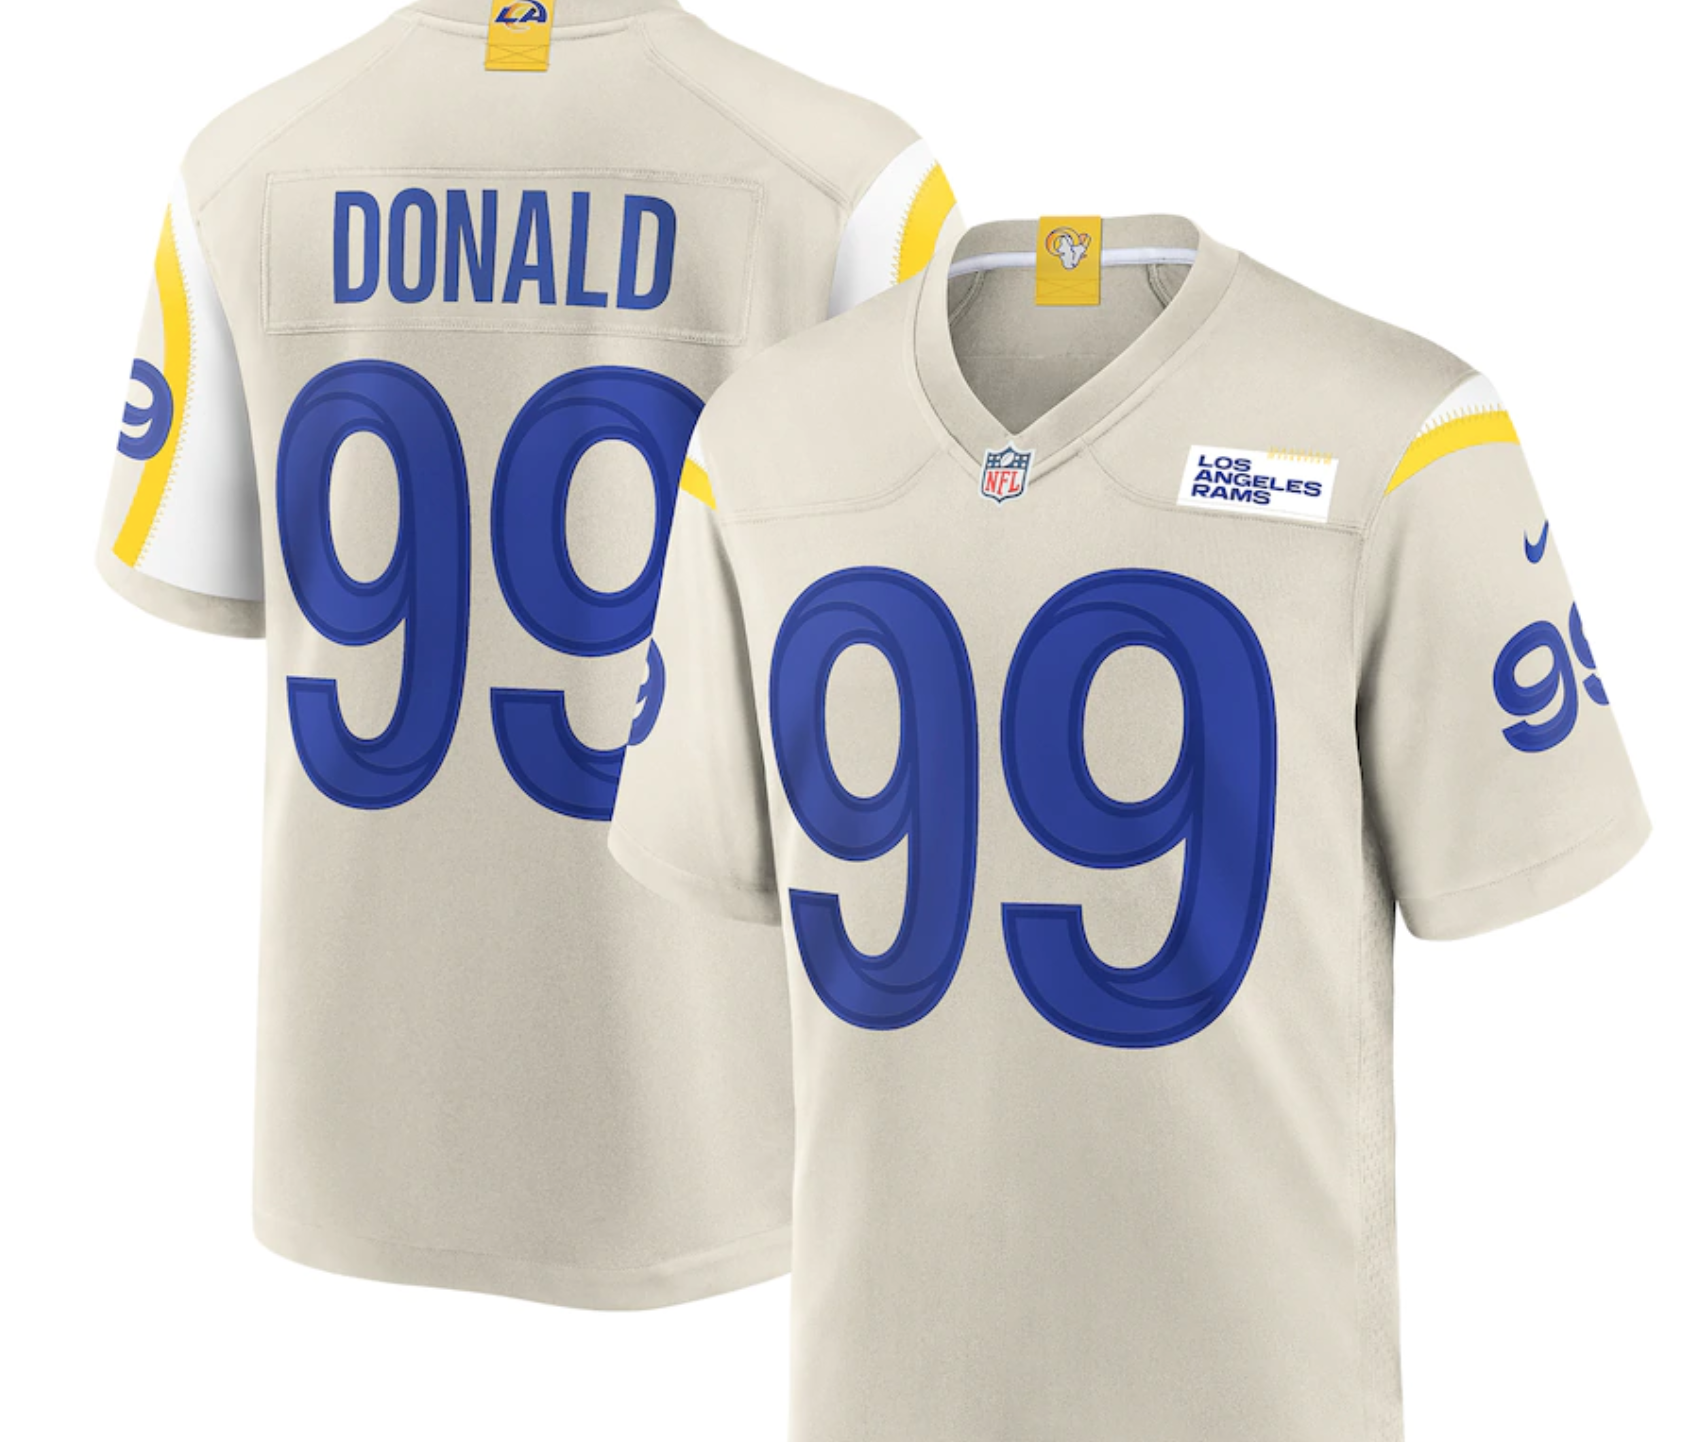 New Los Angeles Rams jersey, LA Rams unveil new uniforms, Where to ...